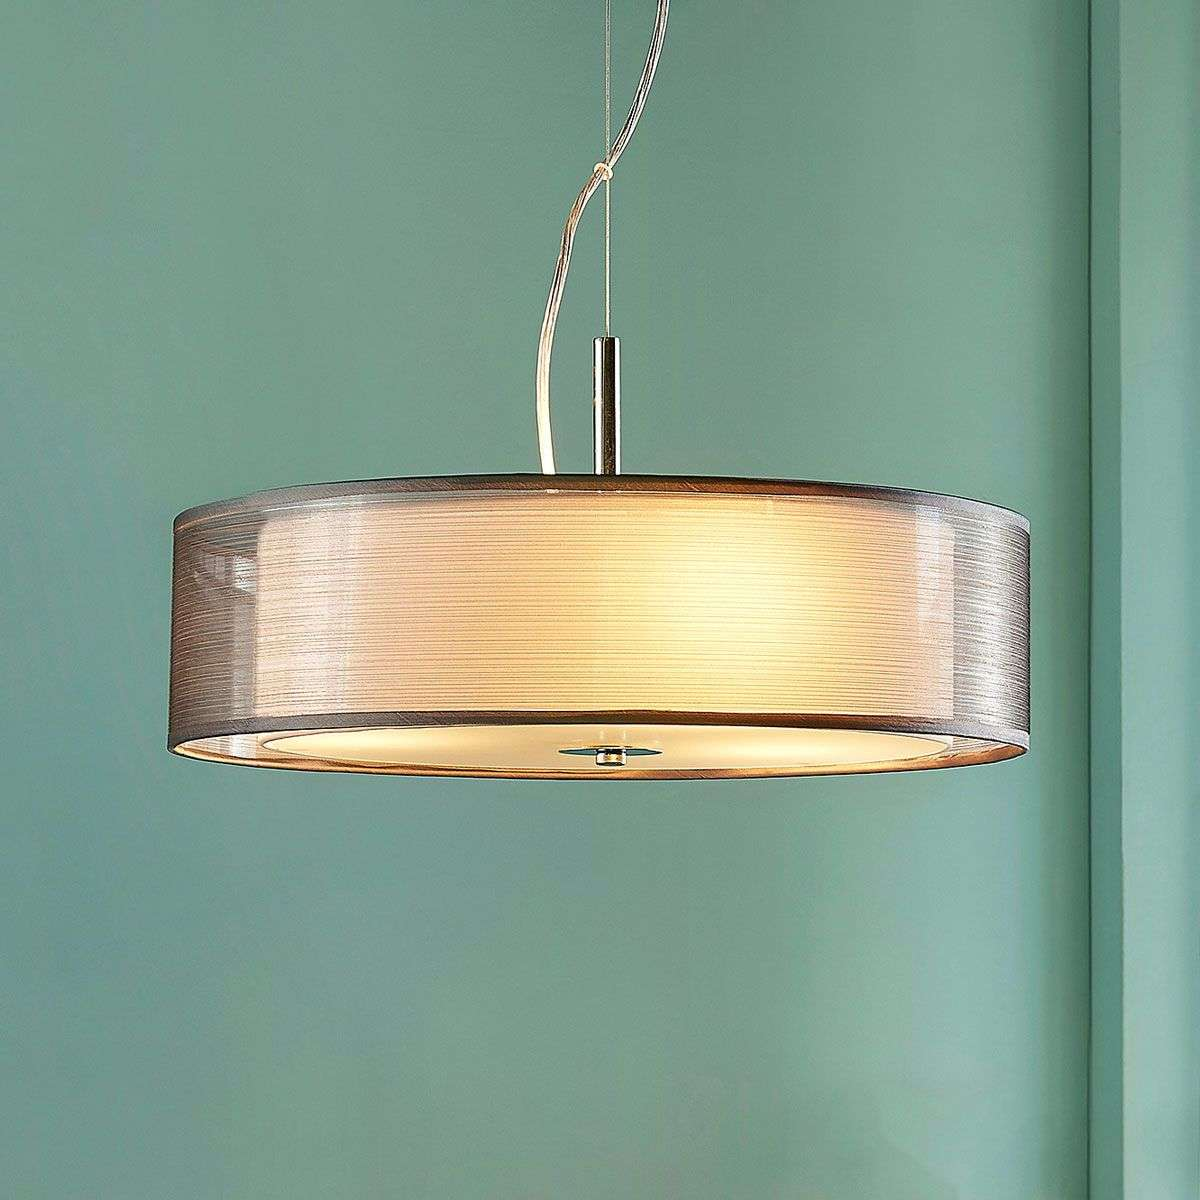 Noralie grey fabric pendant lamp round lights noralie grey fabric pendant lamp round 9621458 32 aloadofball Images